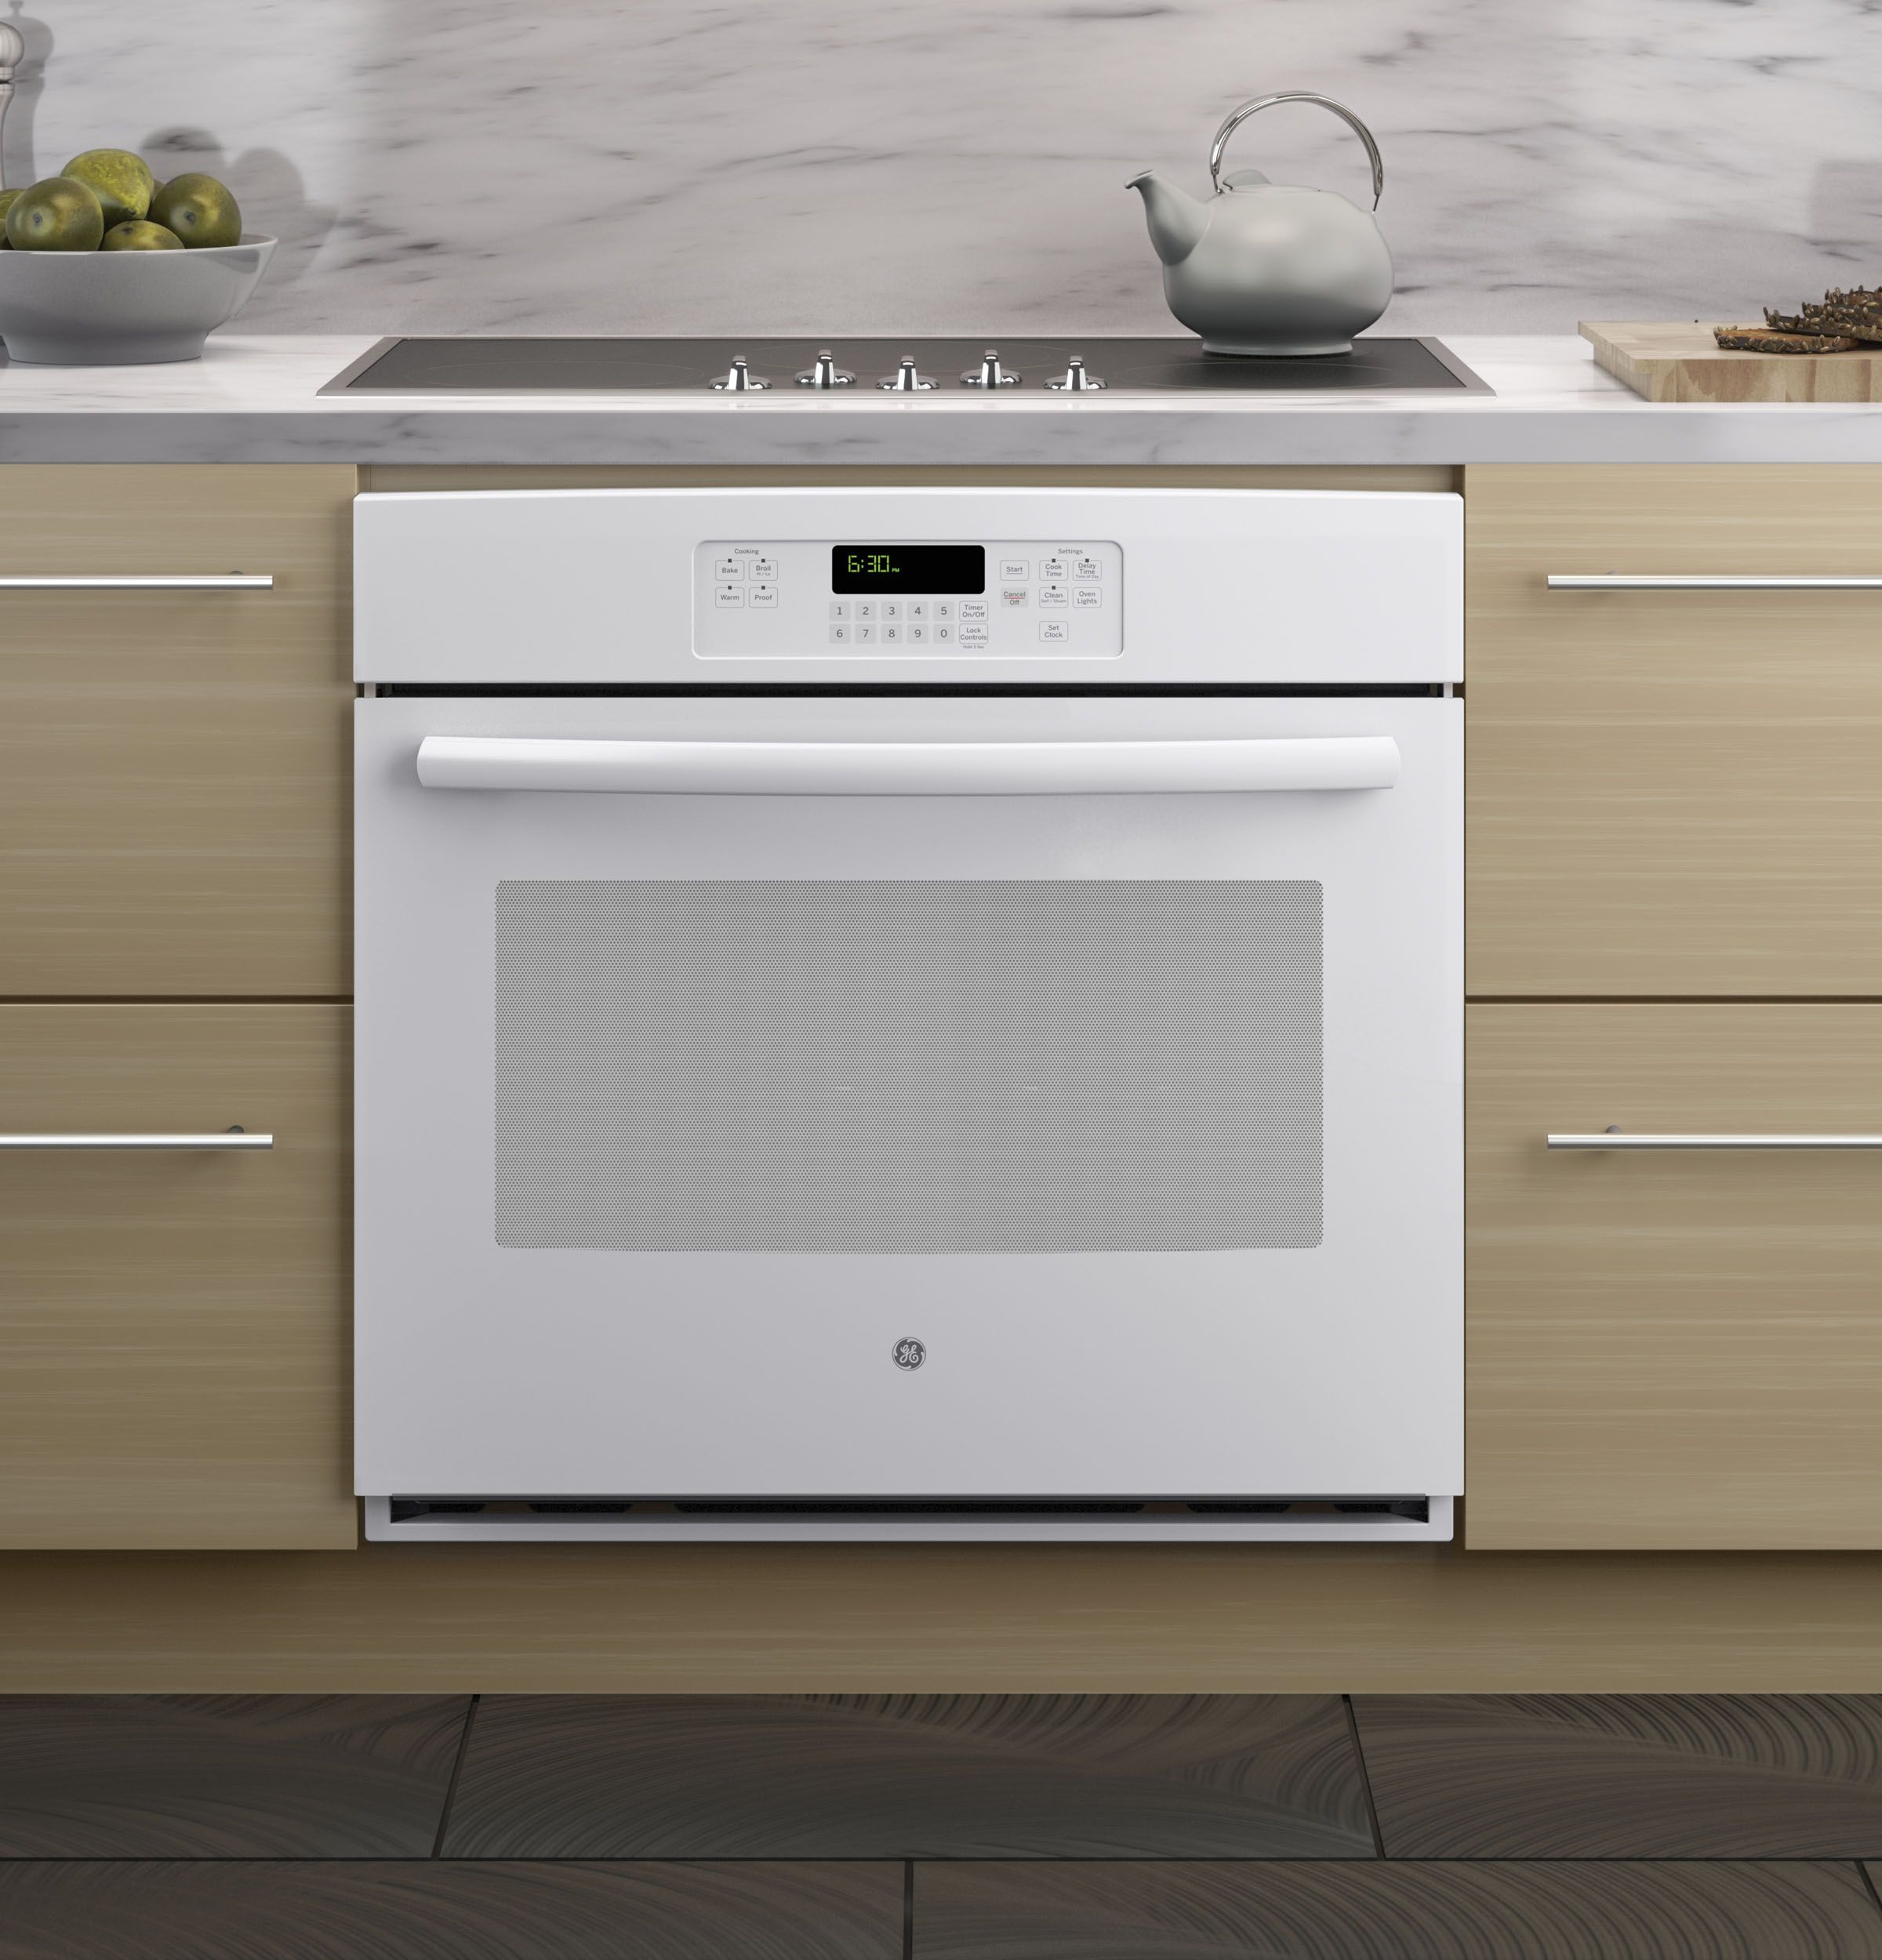 full series stunning showroom appliances boss deals appliance size dishwasher kitchen discount single of bosch employee retail package drawer store insurance